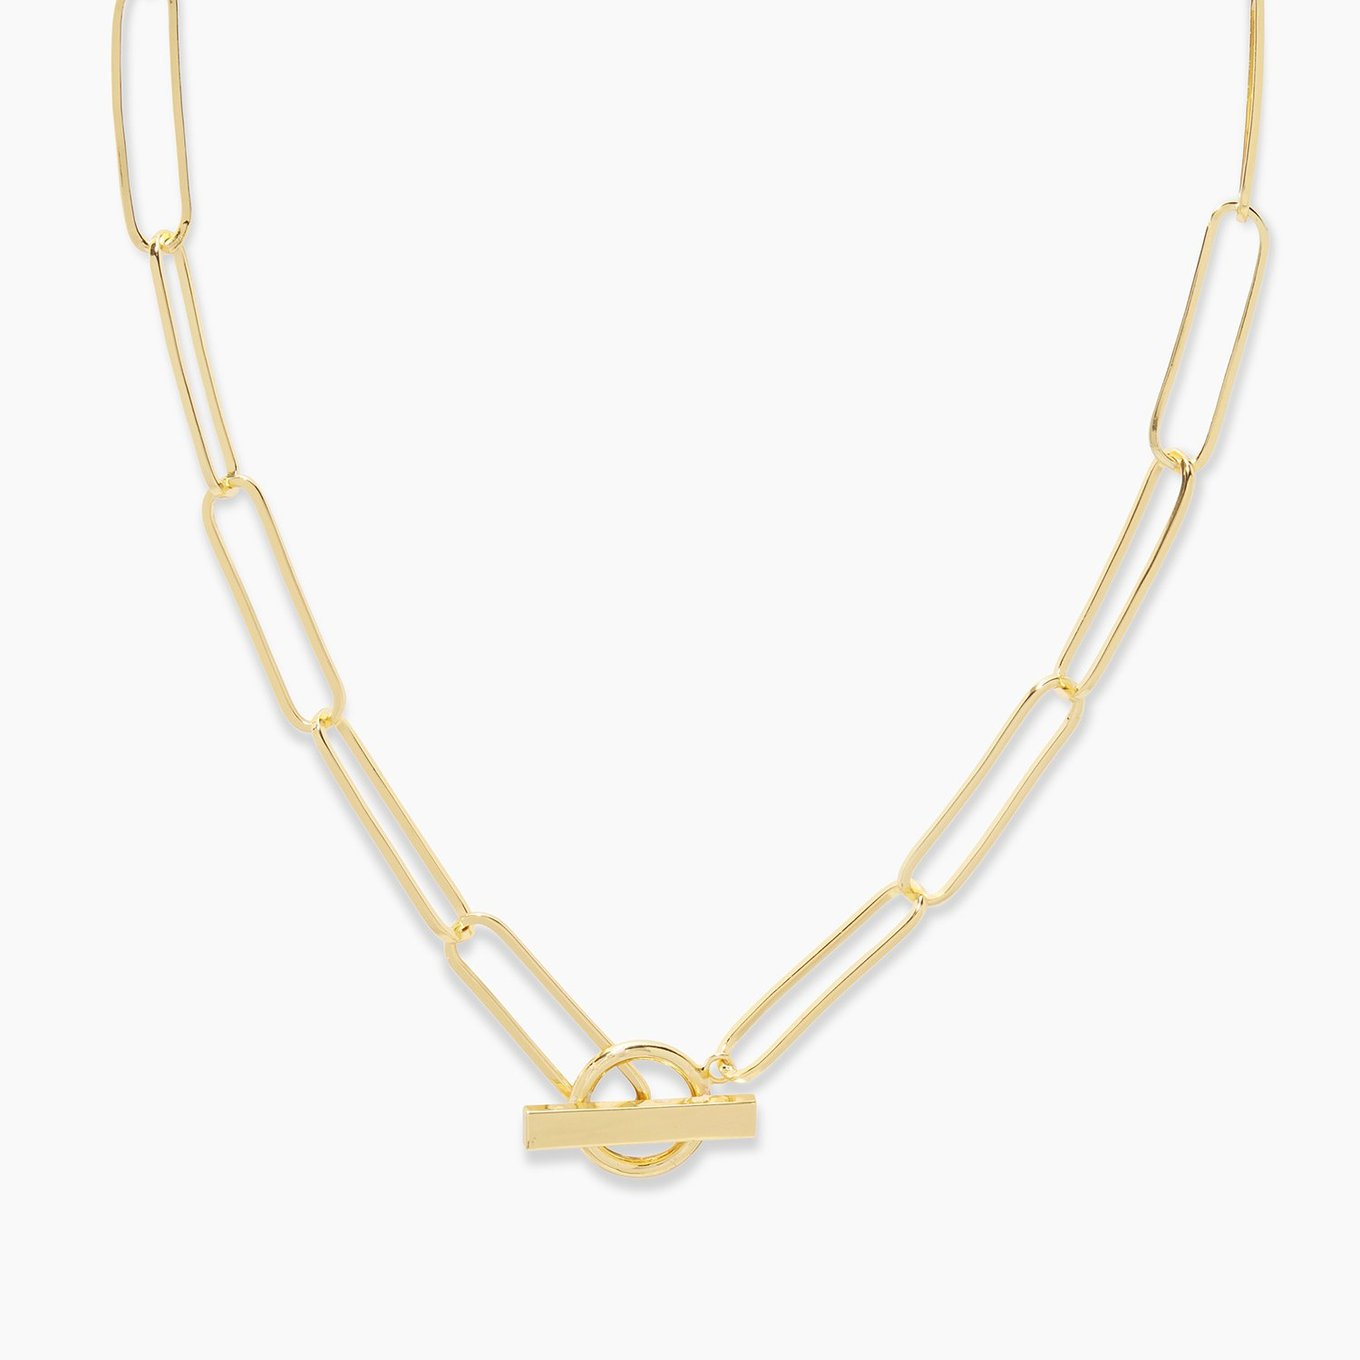 "SUPERSIZE ME: oversized chain links offer maximum impact. Make no mistake. These oversized paperclip chain links are considered a ""statement piece"".  17"" chain 1/2"" diameter ring 13/16"" long bar Toggle closure 18k gold plated brass Avoid contact with anything containing derivatives of alcohol"